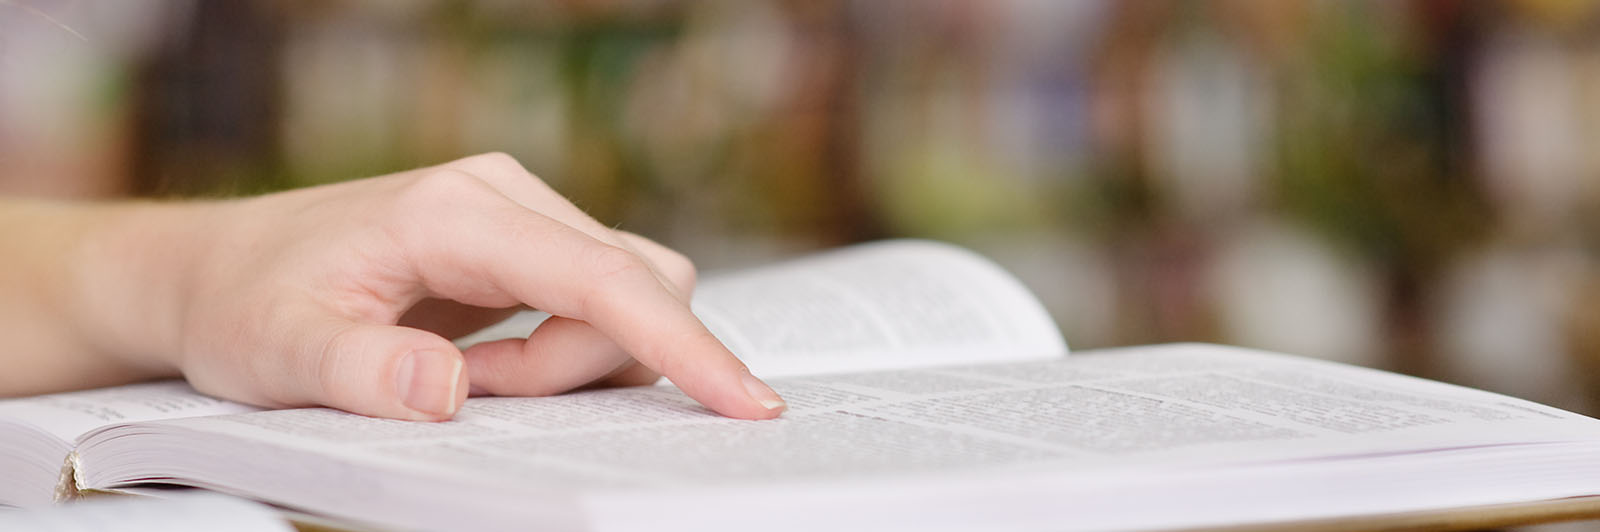 hand pointing to page in a book